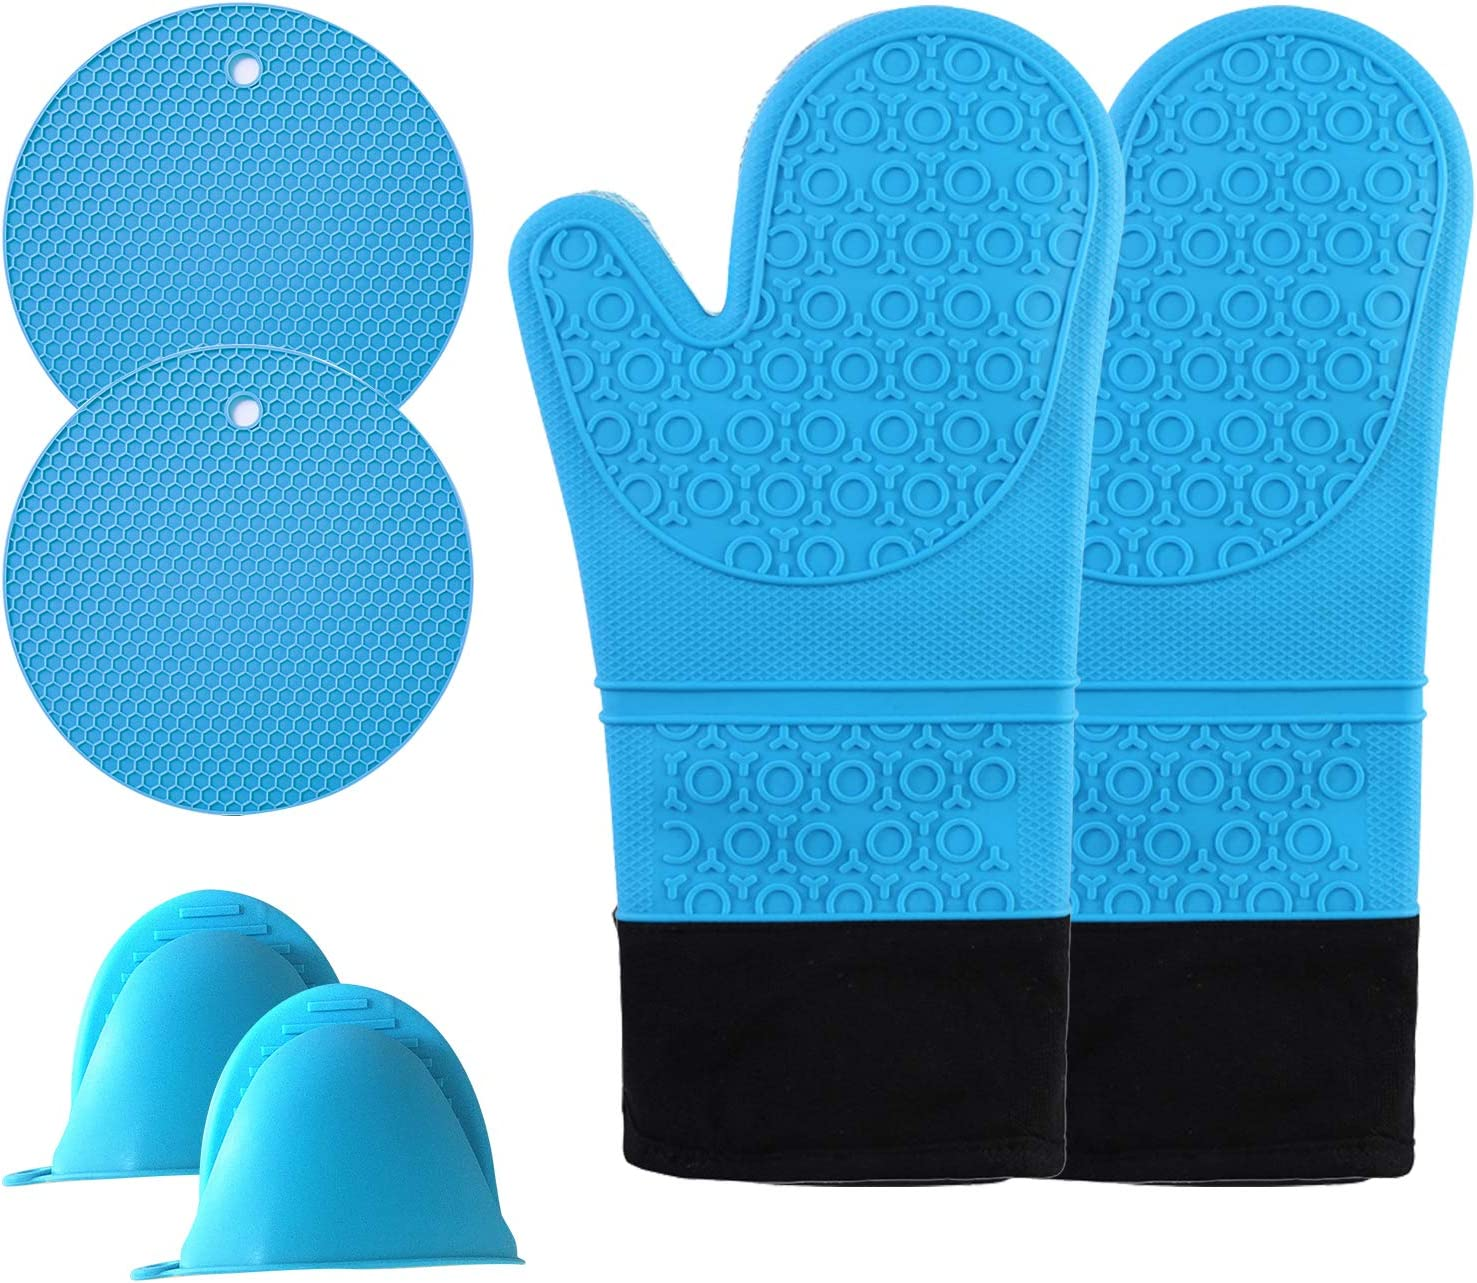 Oven Mitts, Long Silicone Oven Mitts and Pot Holders Set, 446℉ Heat Resistant, Quilted Liner, Flexible & Comfortable, Non-Slip Design, Easy to Clean, Great for Kitchen/Baking/Cooking/BBQ